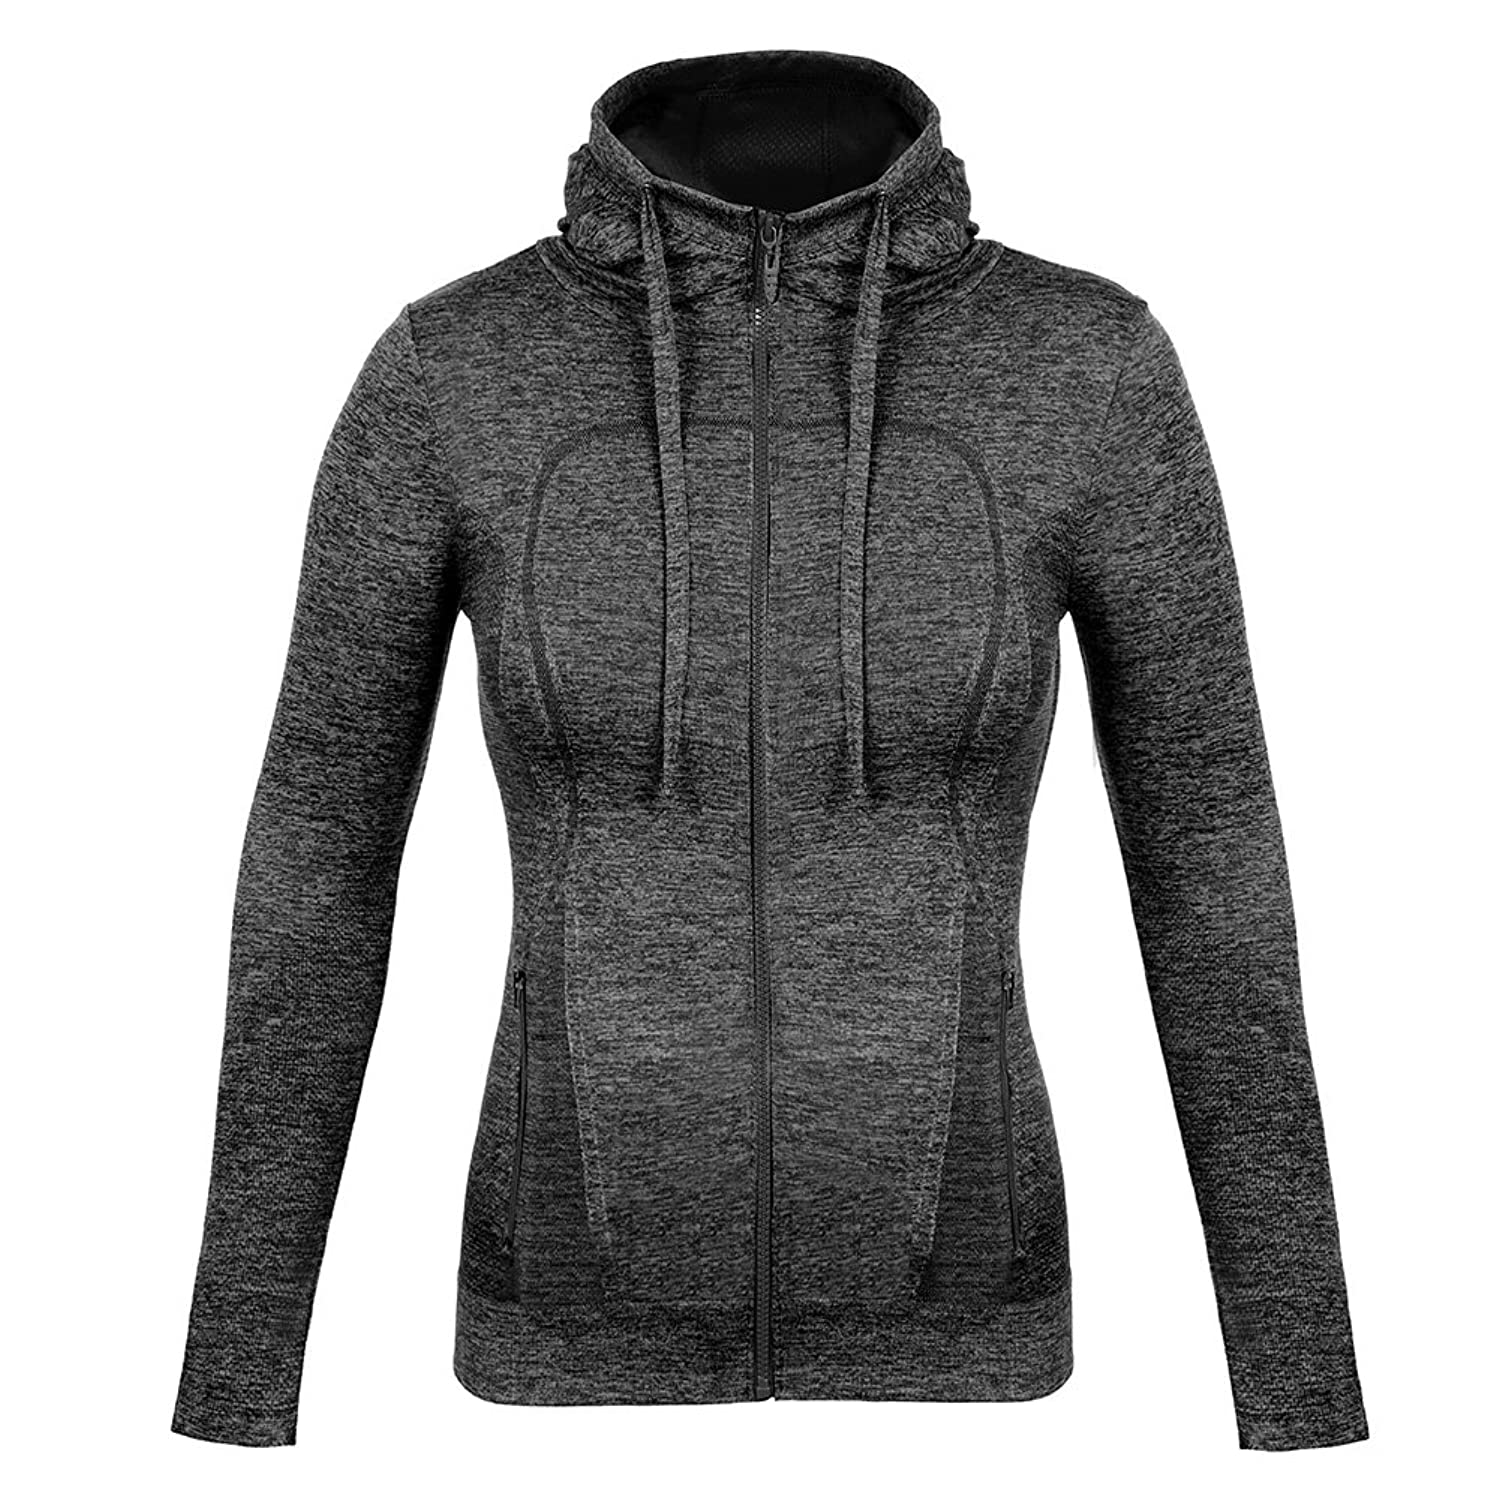 Fitibest Women's Yoga Running Jackets Full Zip Activewear Coat with Thumb  Holes Fitness Sports Blazer Hoodie